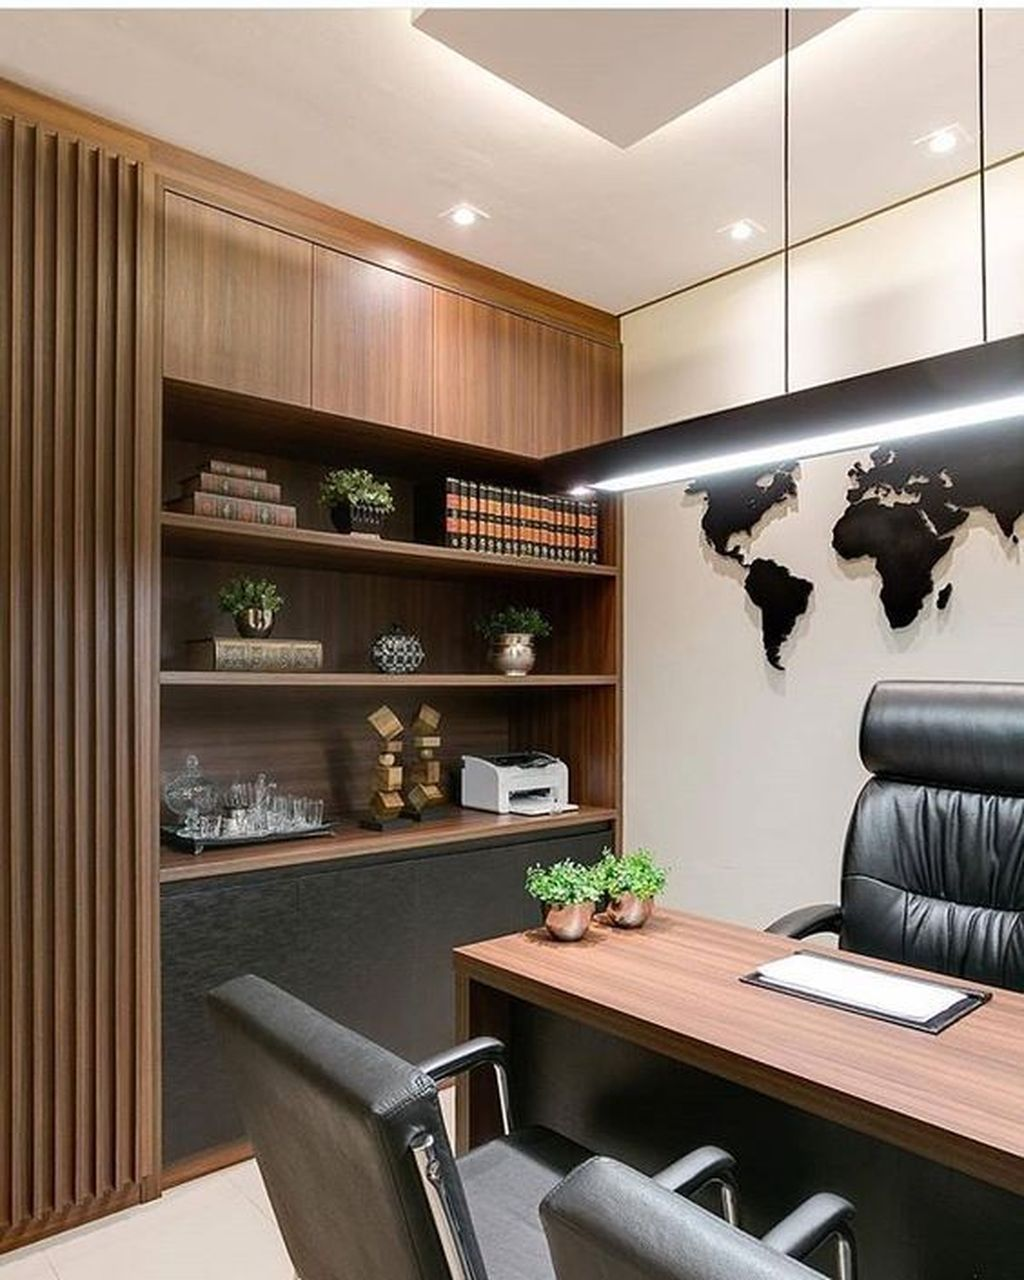 Cool 43 Extraordinary Small Home Office Design Ideas With